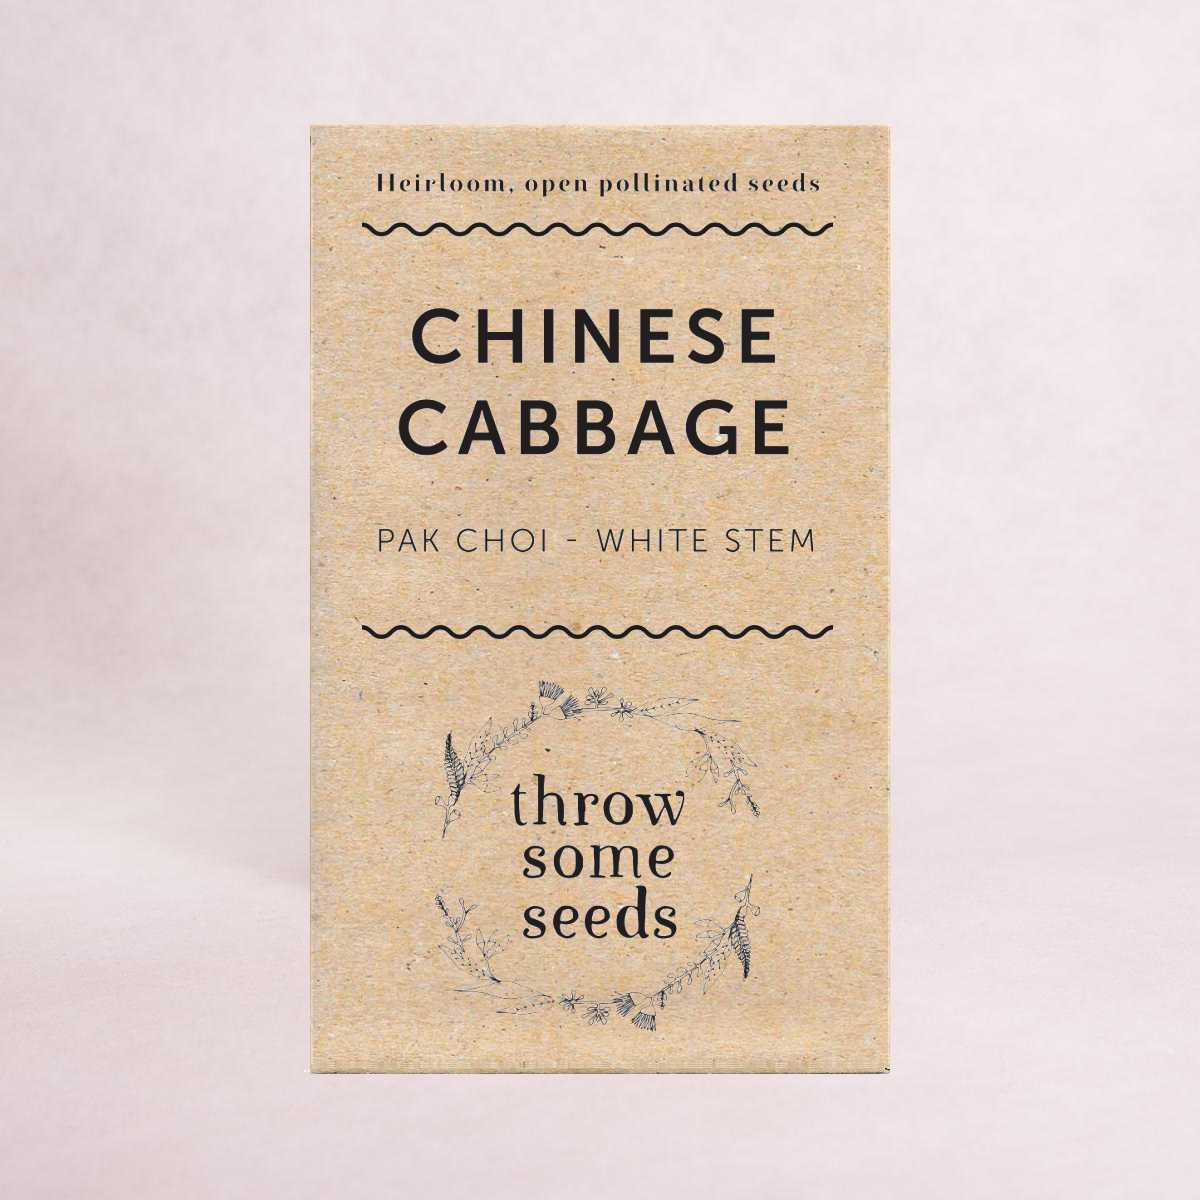 Chinese Cabbage (Pak Choi - White Stem) Seeds - Seeds - Throw Some Seeds - Australian gardening gifts and eco products online!